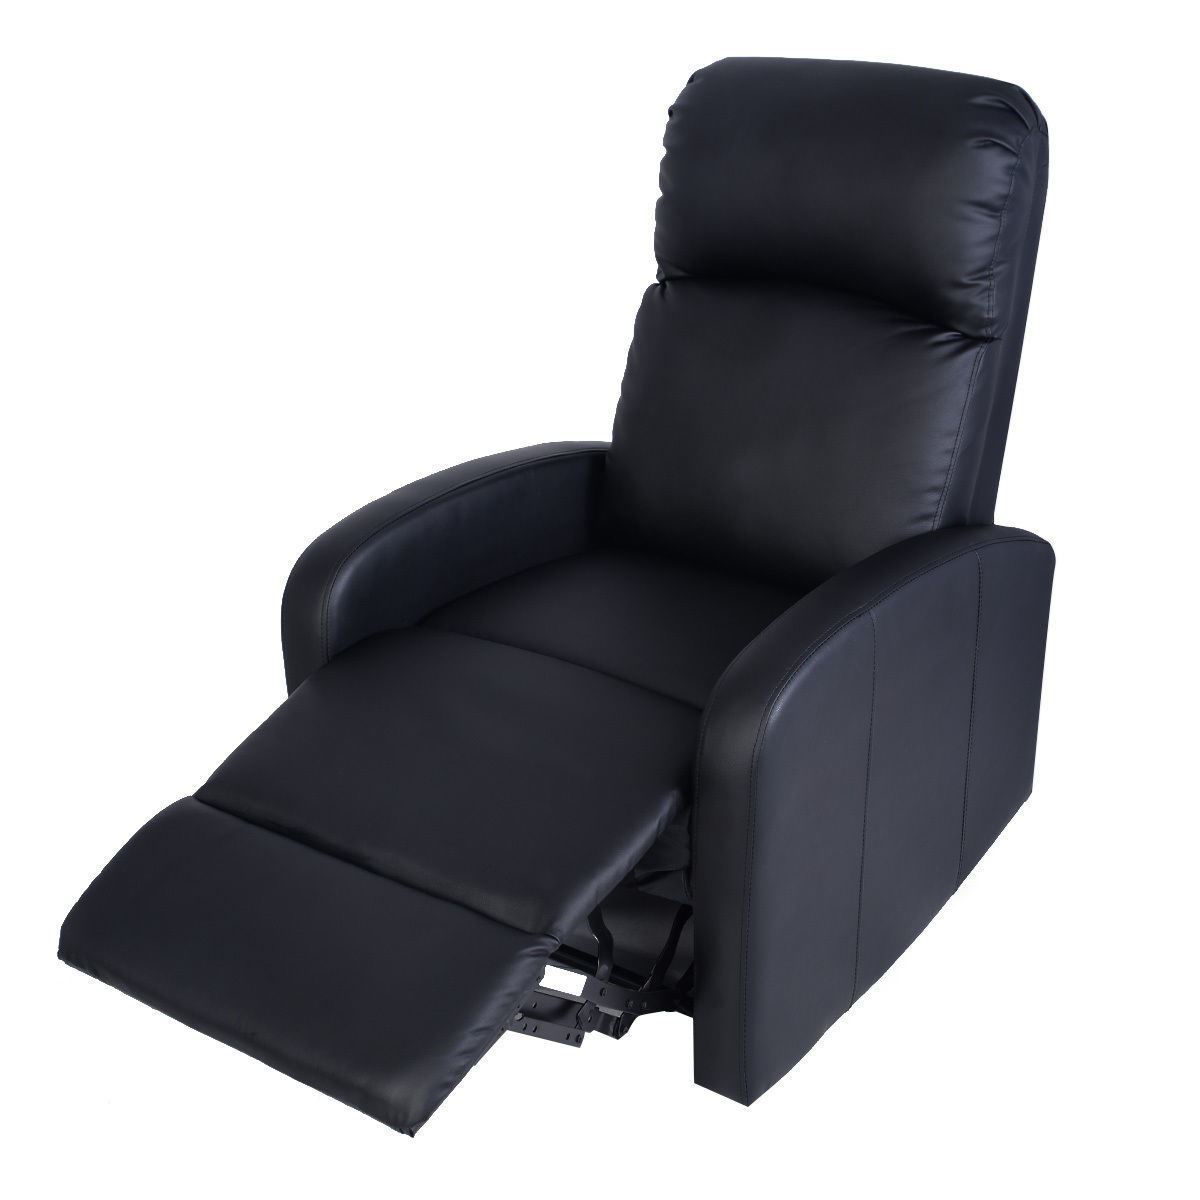 Picture of Recliner Chair Lounger Leather Sofa Seat Manual